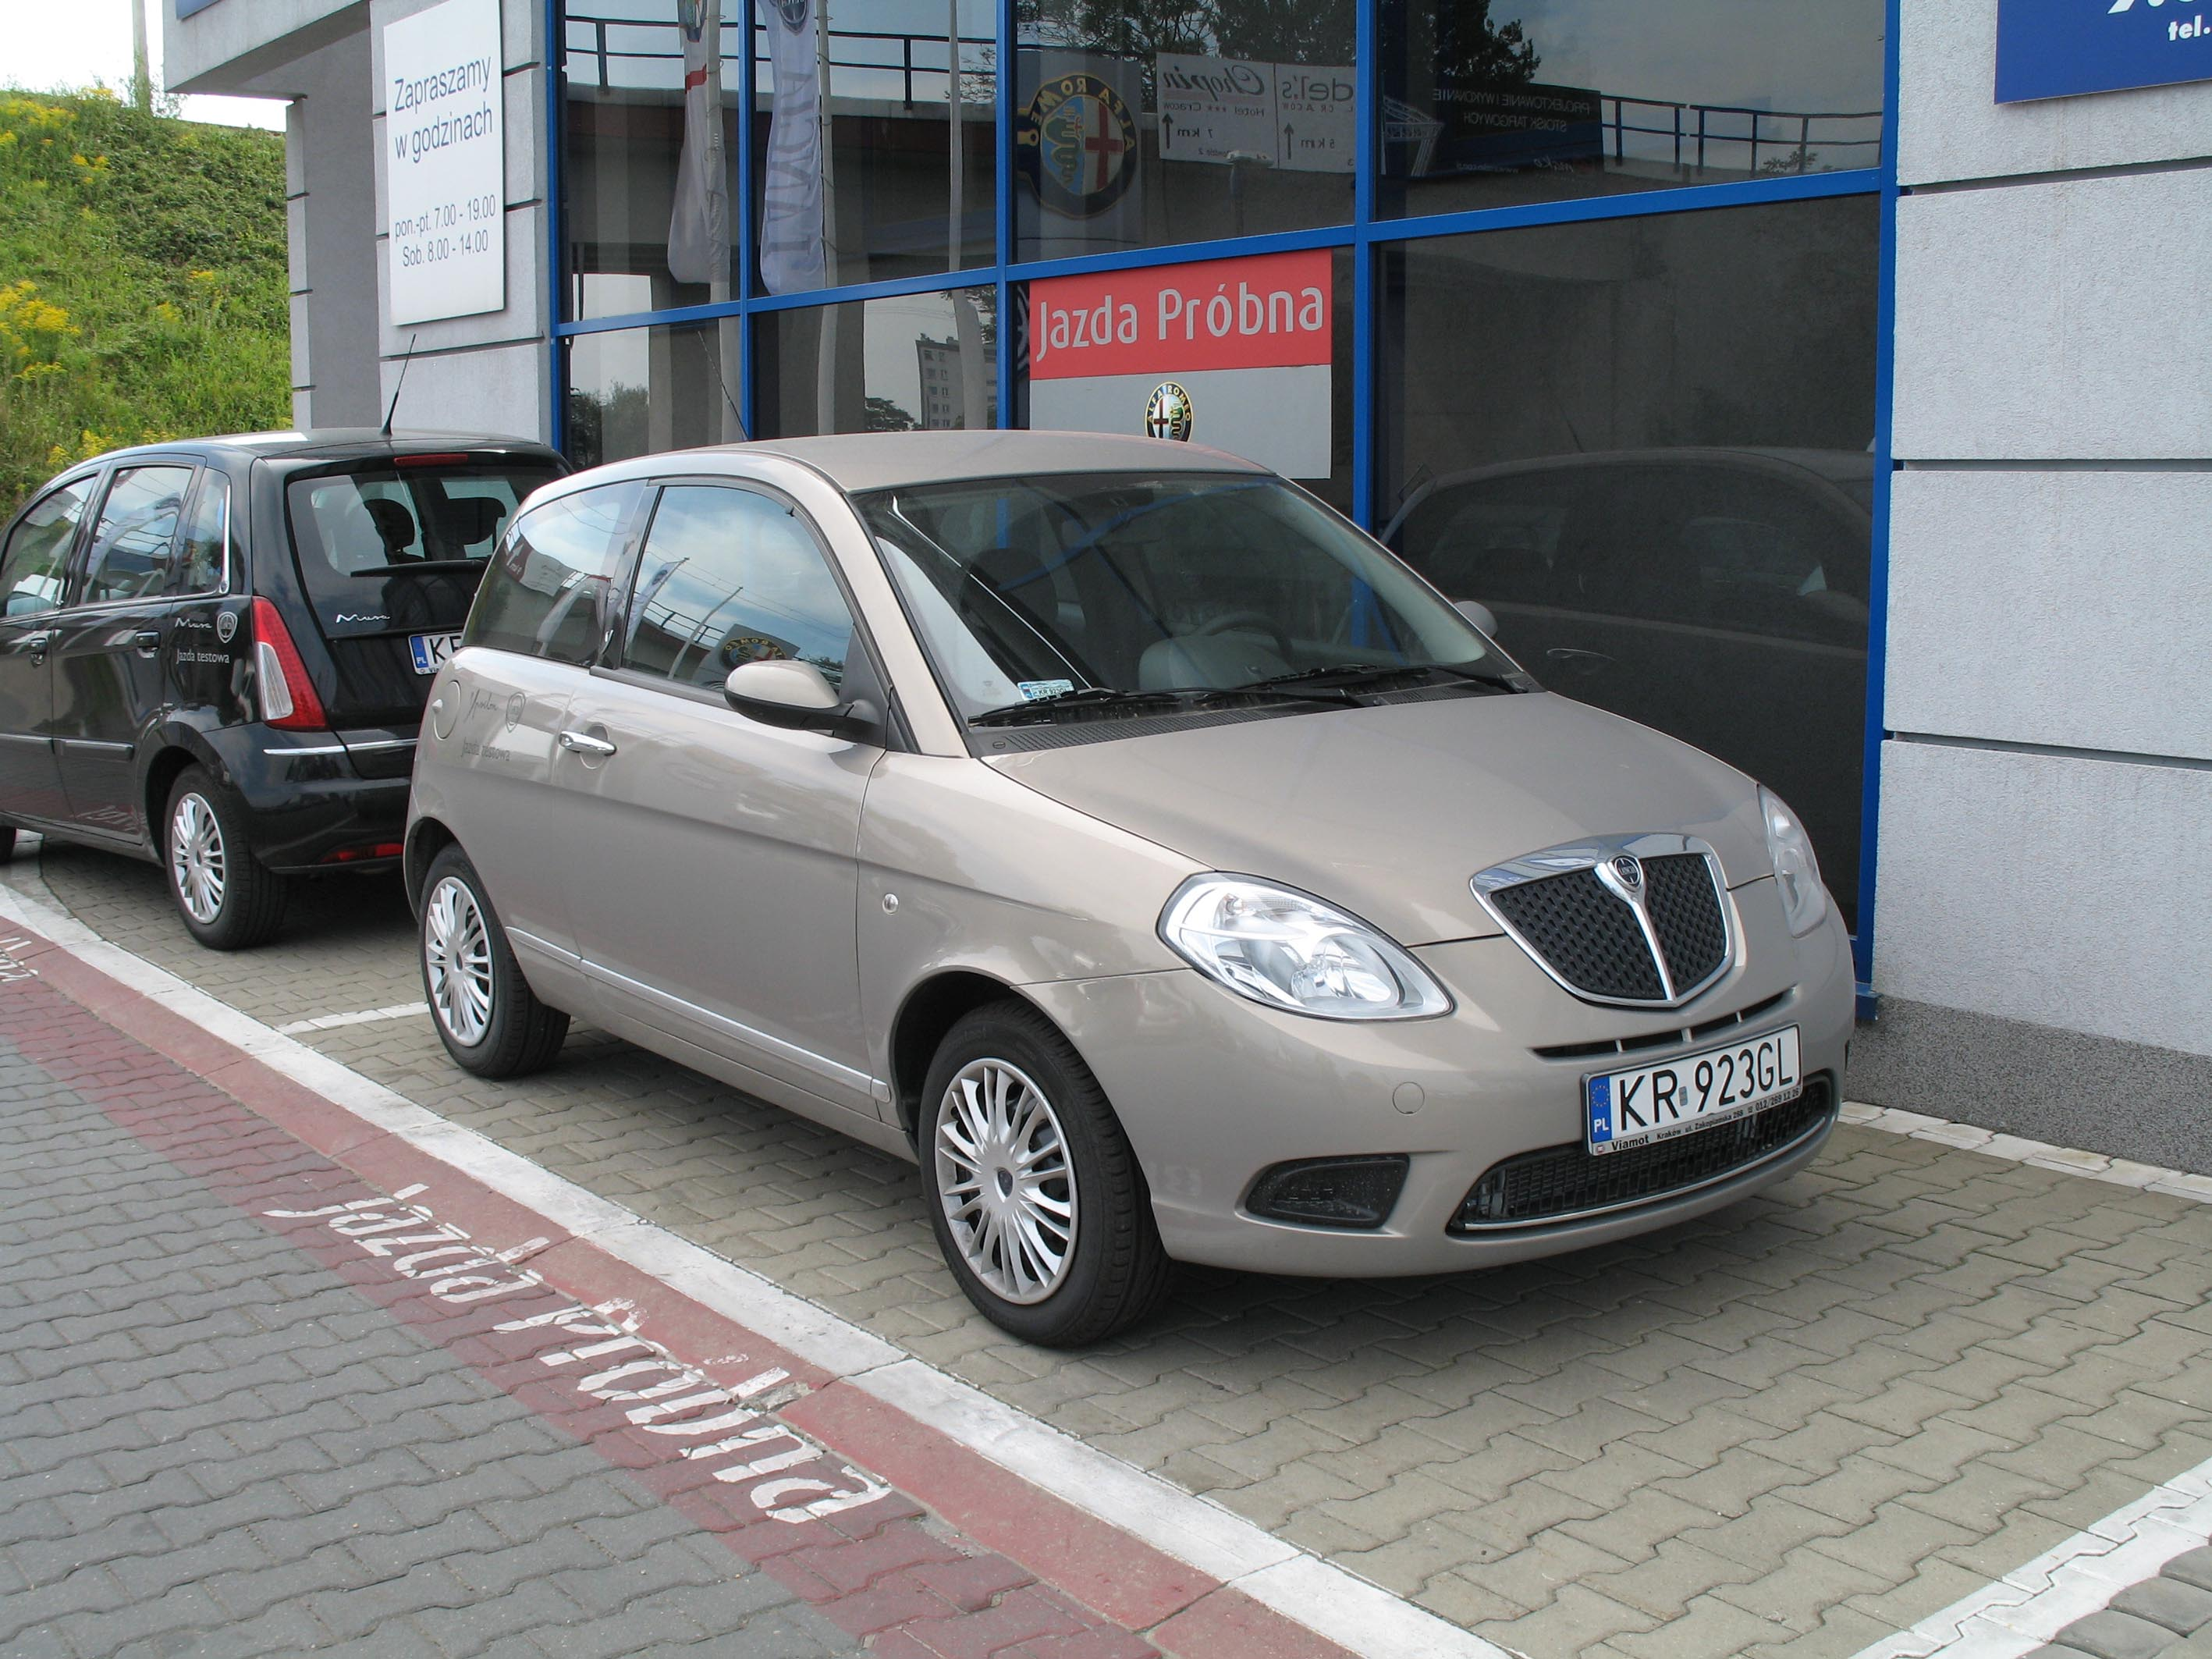 https://upload.wikimedia.org/wikipedia/commons/0/00/Lancia_Ypsilon_do_jazd_probnych.jpg